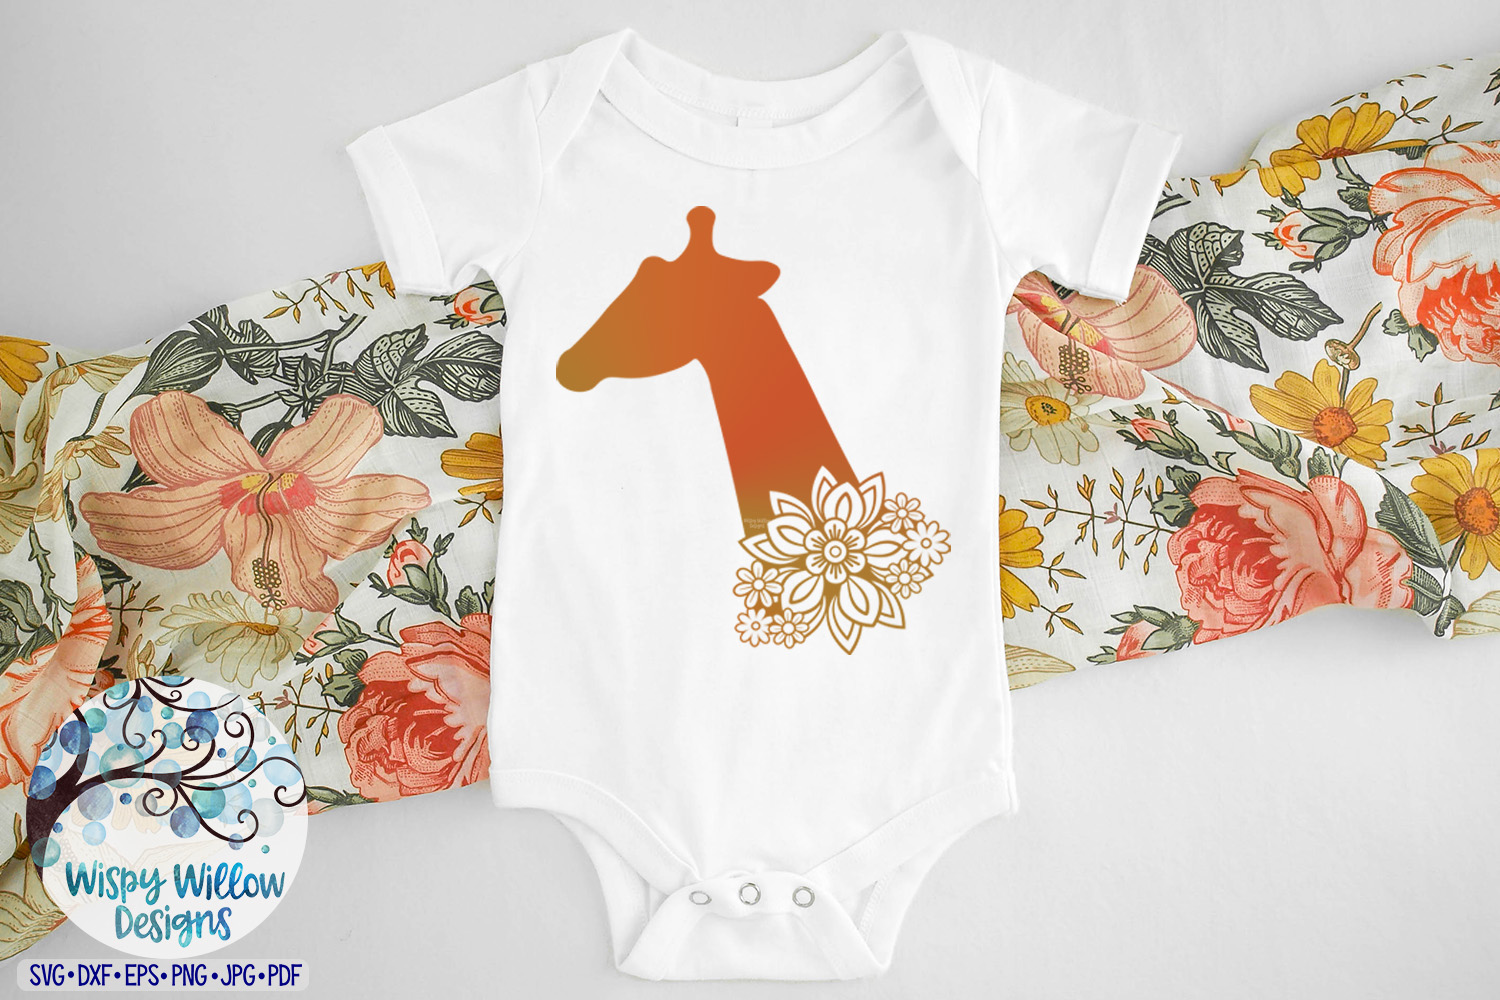 Floral Animal Bundle | Floral Animal SVG Cut Files example image 11